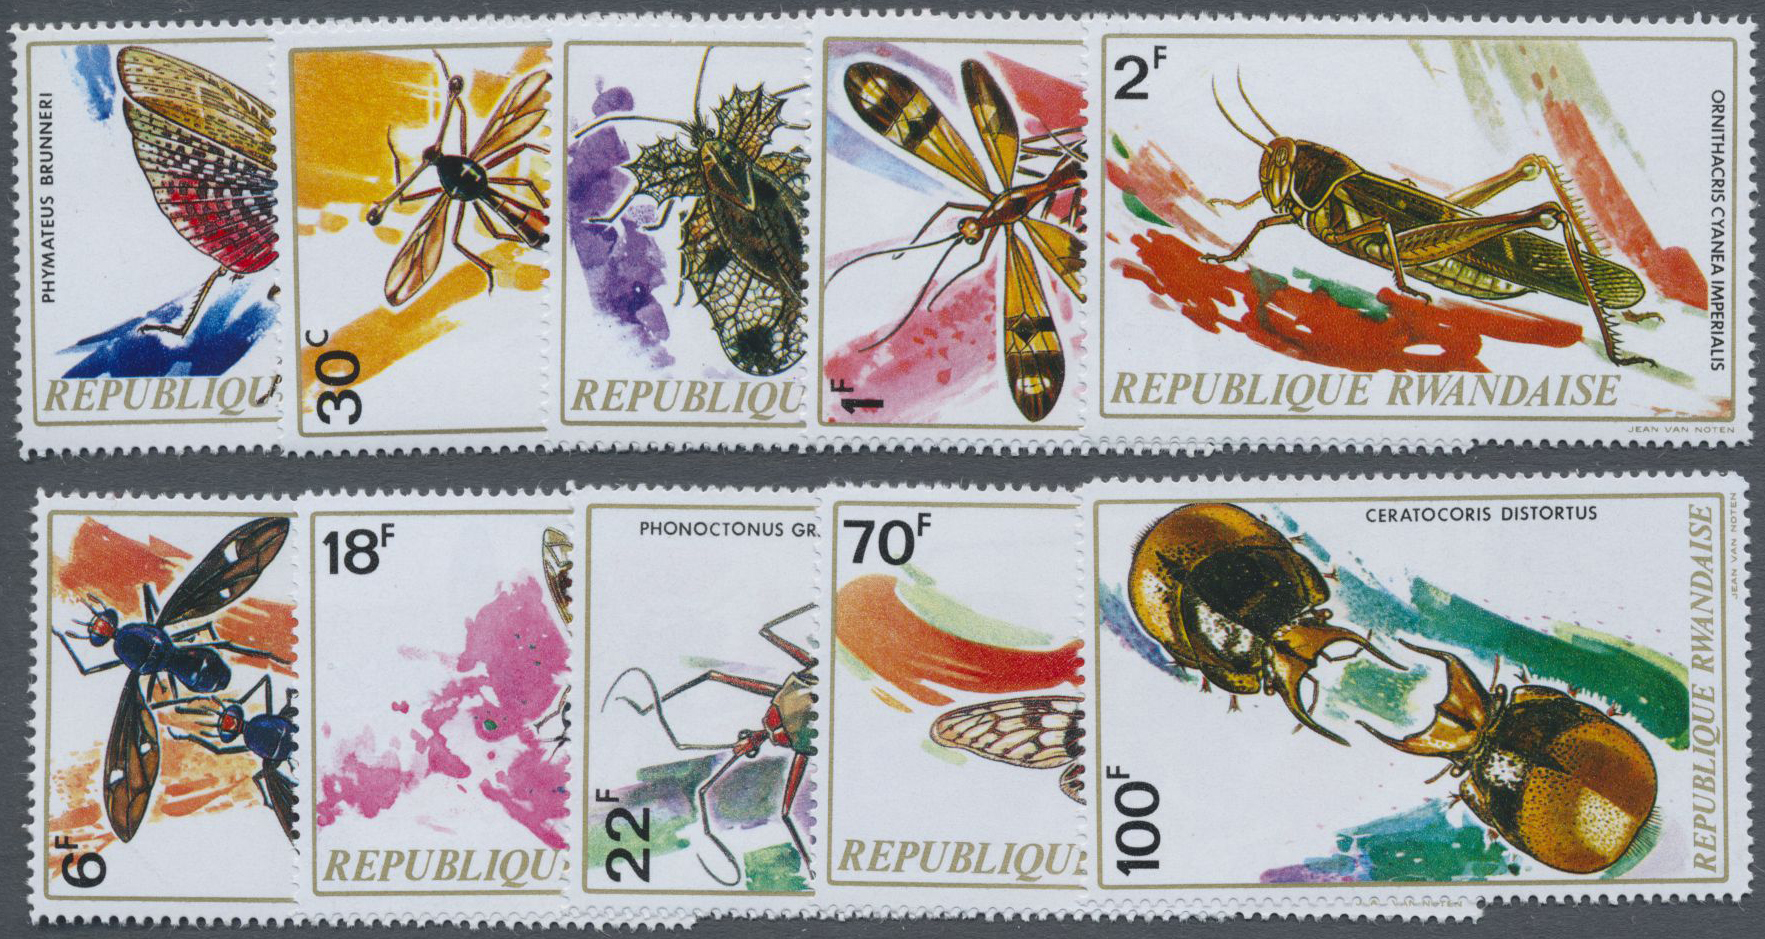 Lot 19884 - ruanda  -  Auktionshaus Christoph Gärtner GmbH & Co. KG Sale #47 Collections: Overseas, Thematics, Europe